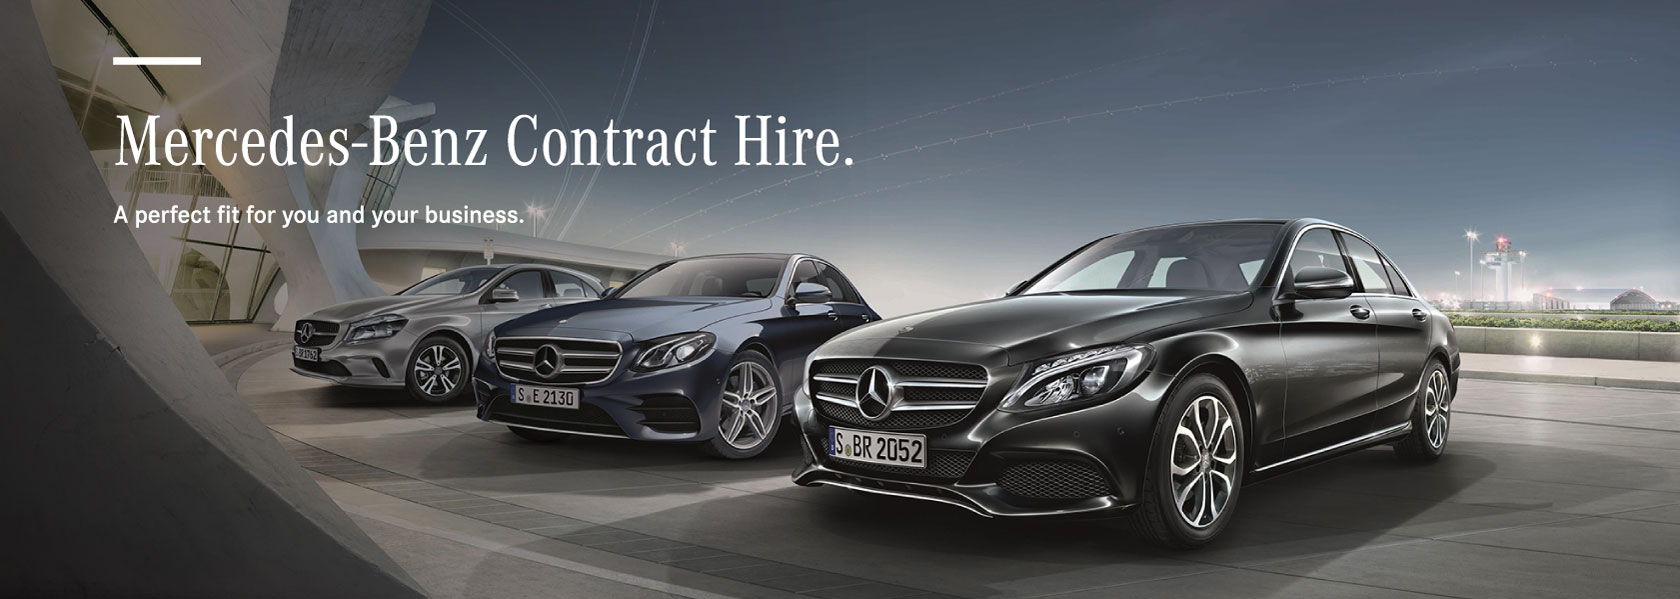 Contract hire mercedes benz for Mercedes benz service contract